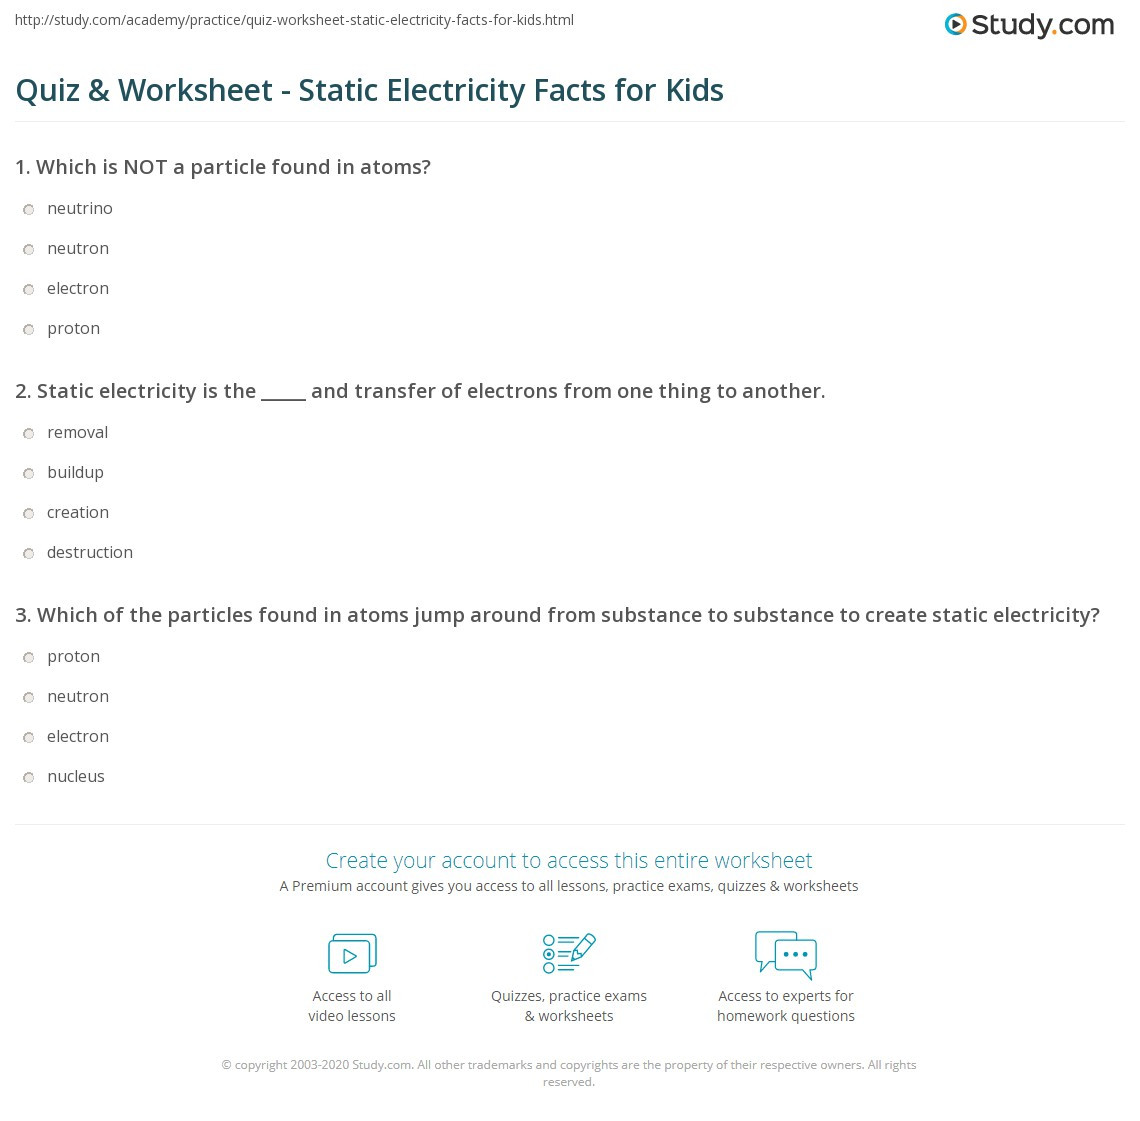 30 Static Electricity Worksheet Answers